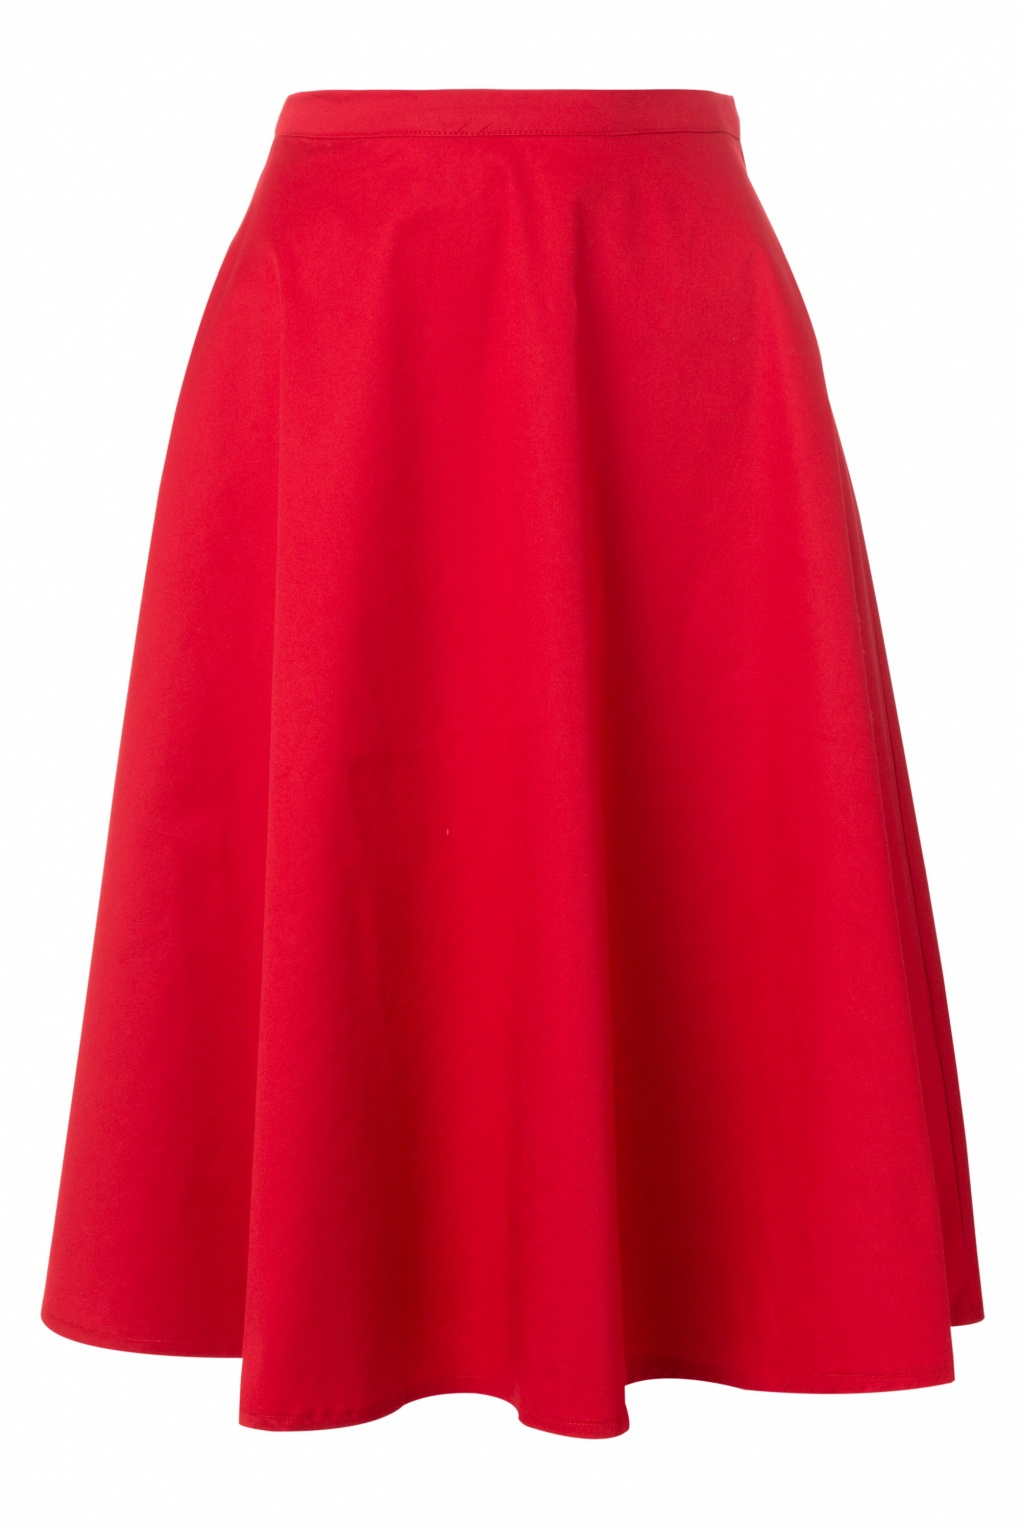 Shop our Collection of Women's Red Skirts at chaplin-favor.tk for the Latest Designer Brands & Styles. FREE SHIPPING AVAILABLE!